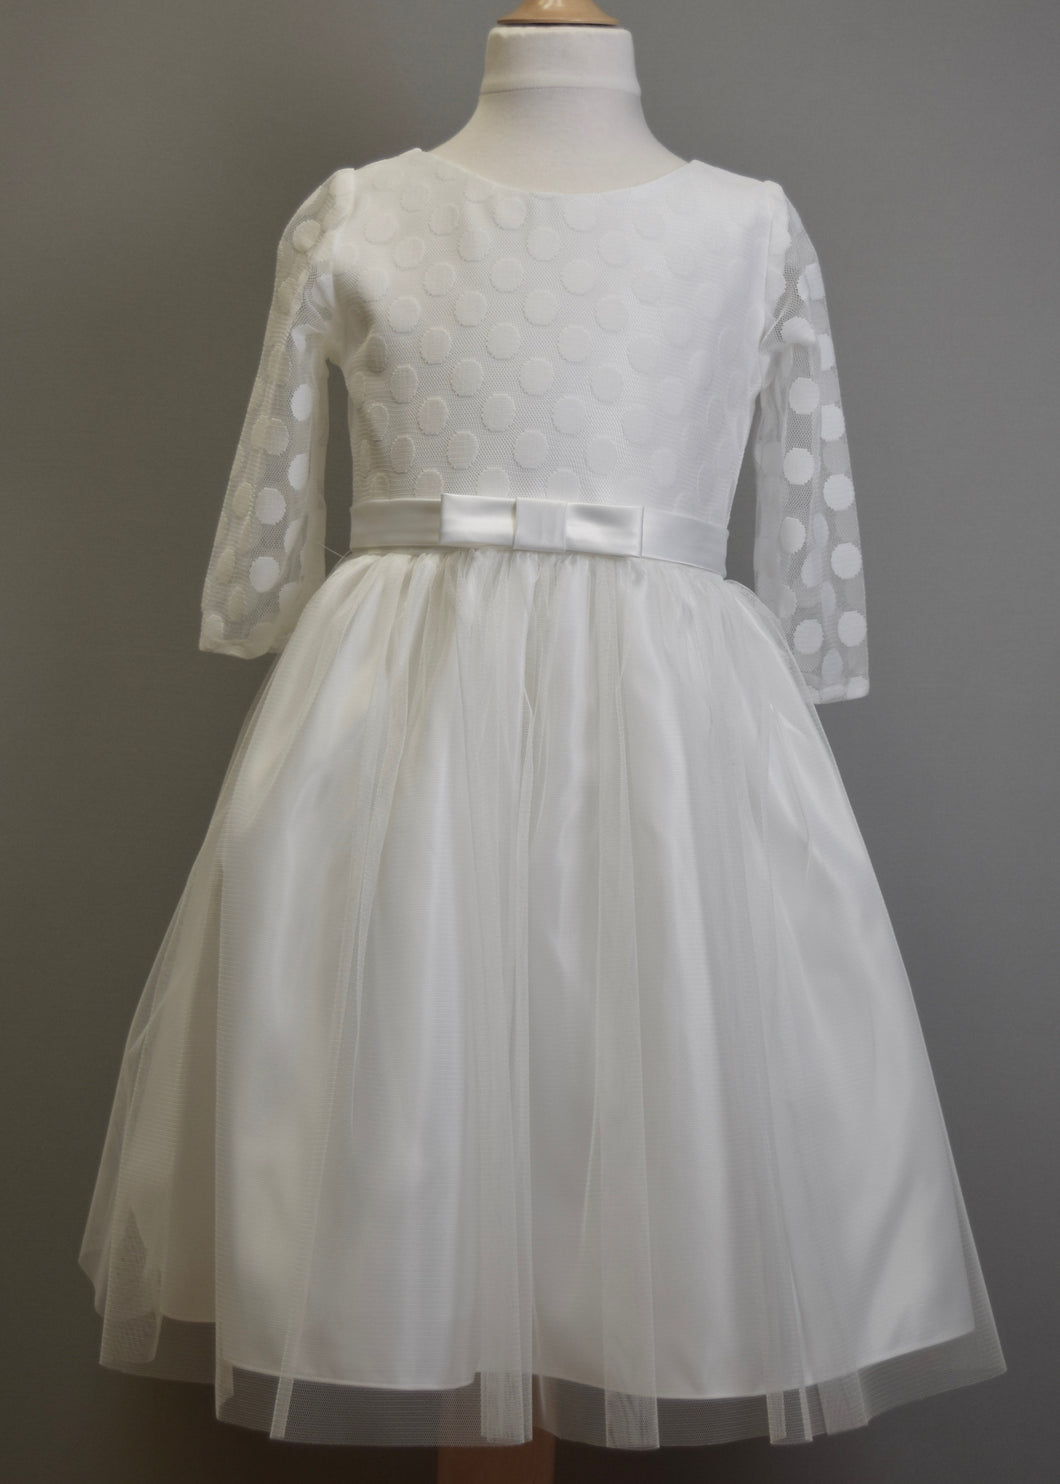 Polkadot Mesh and Tulle Flower Girl Dress